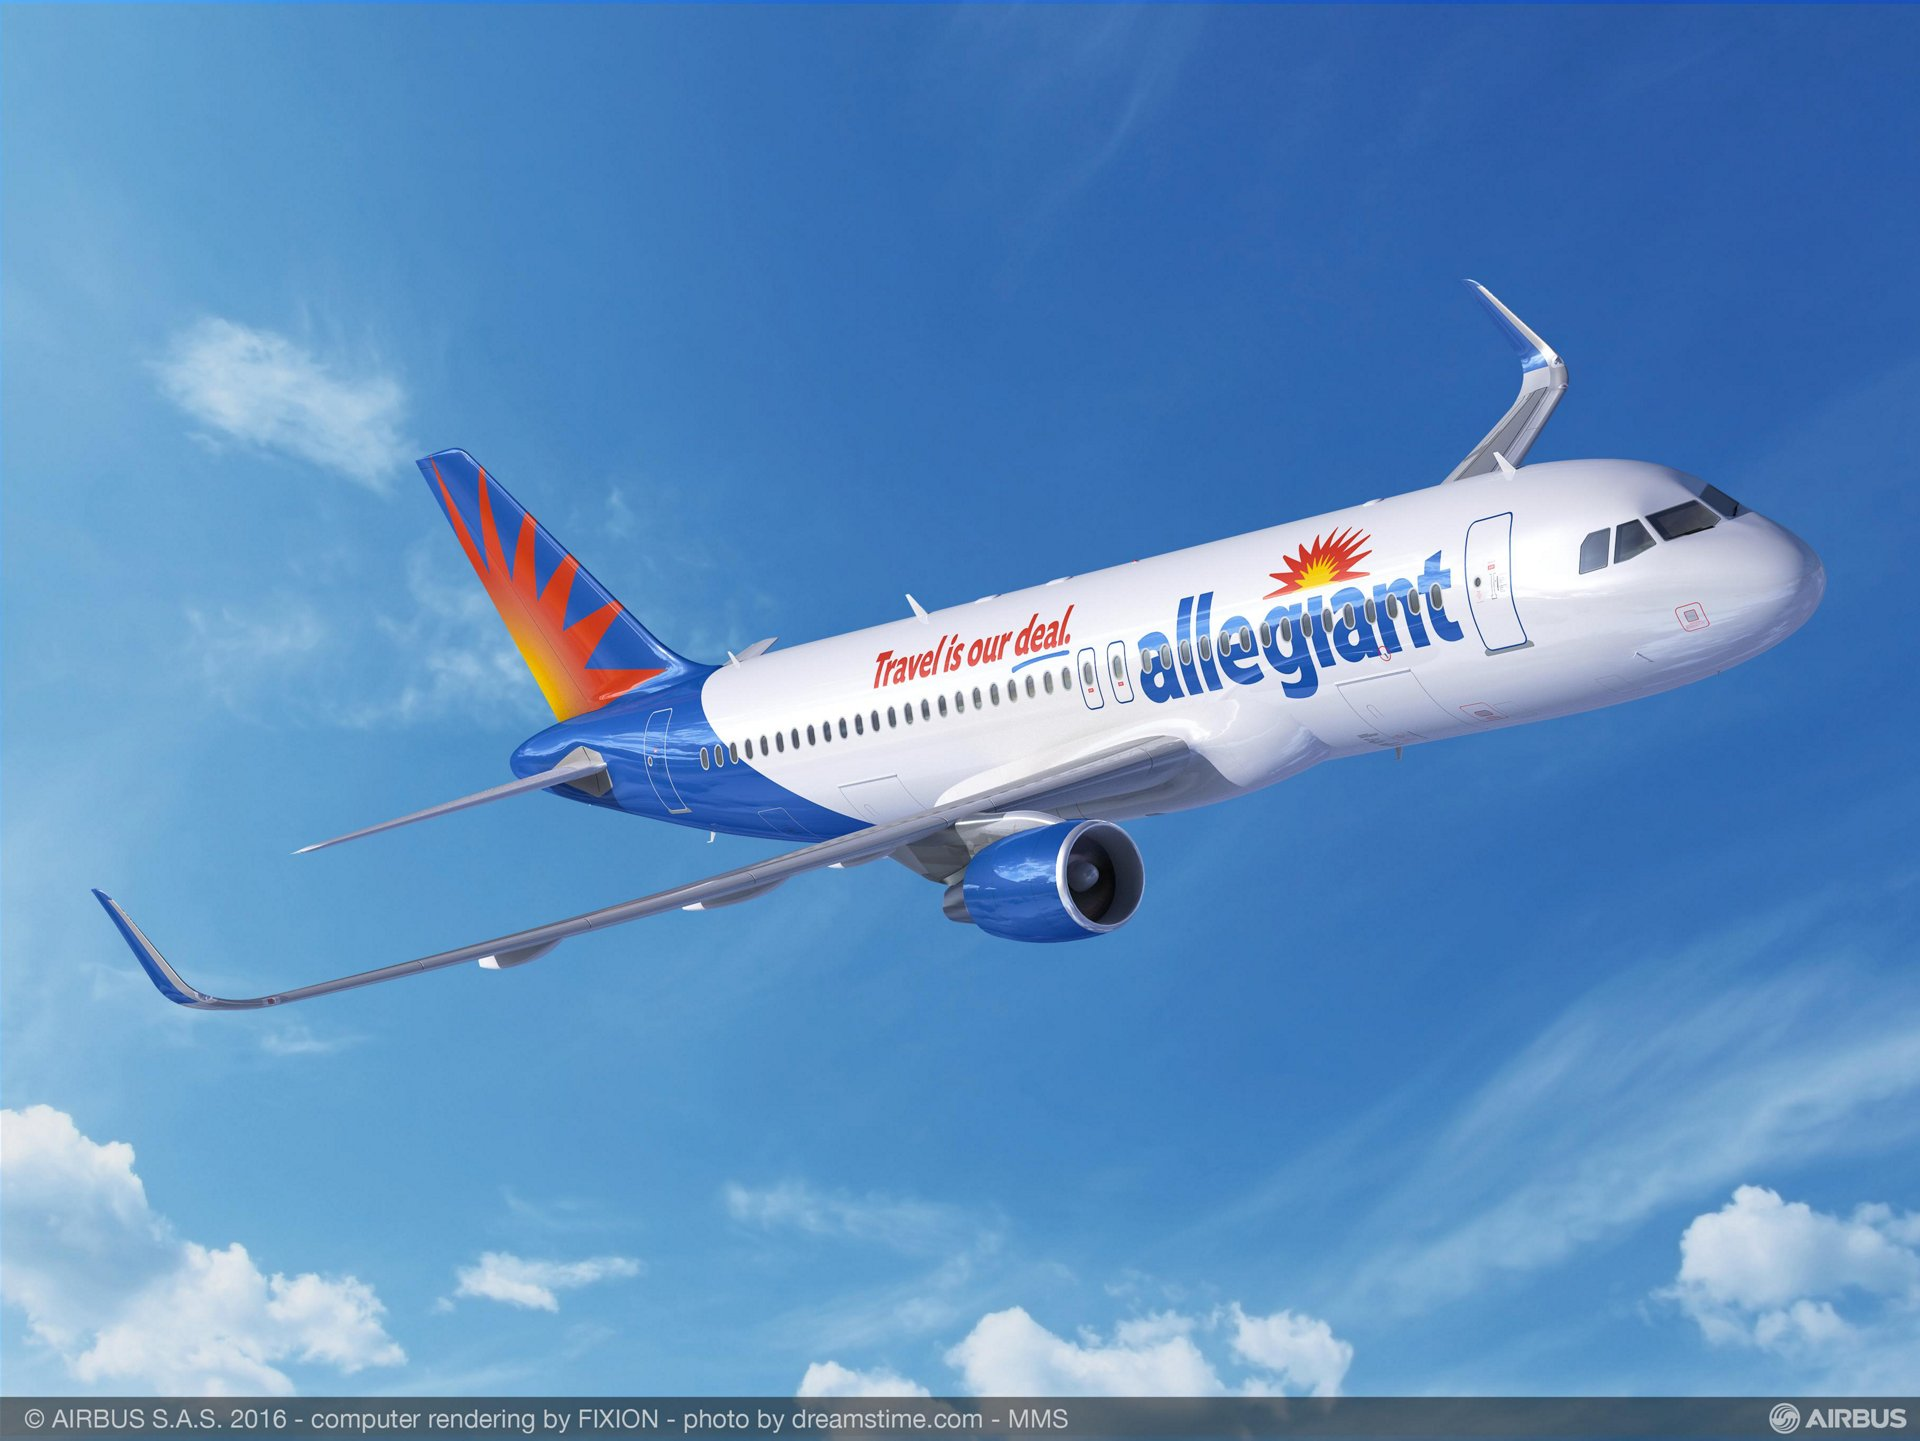 Allegiant Travel Company – based in Las Vegas, Nevada – placed an order for 12 A320ceo (current engine option) jetliners as part of its fleet plan that focuses on a transition to all Airbus aircraft